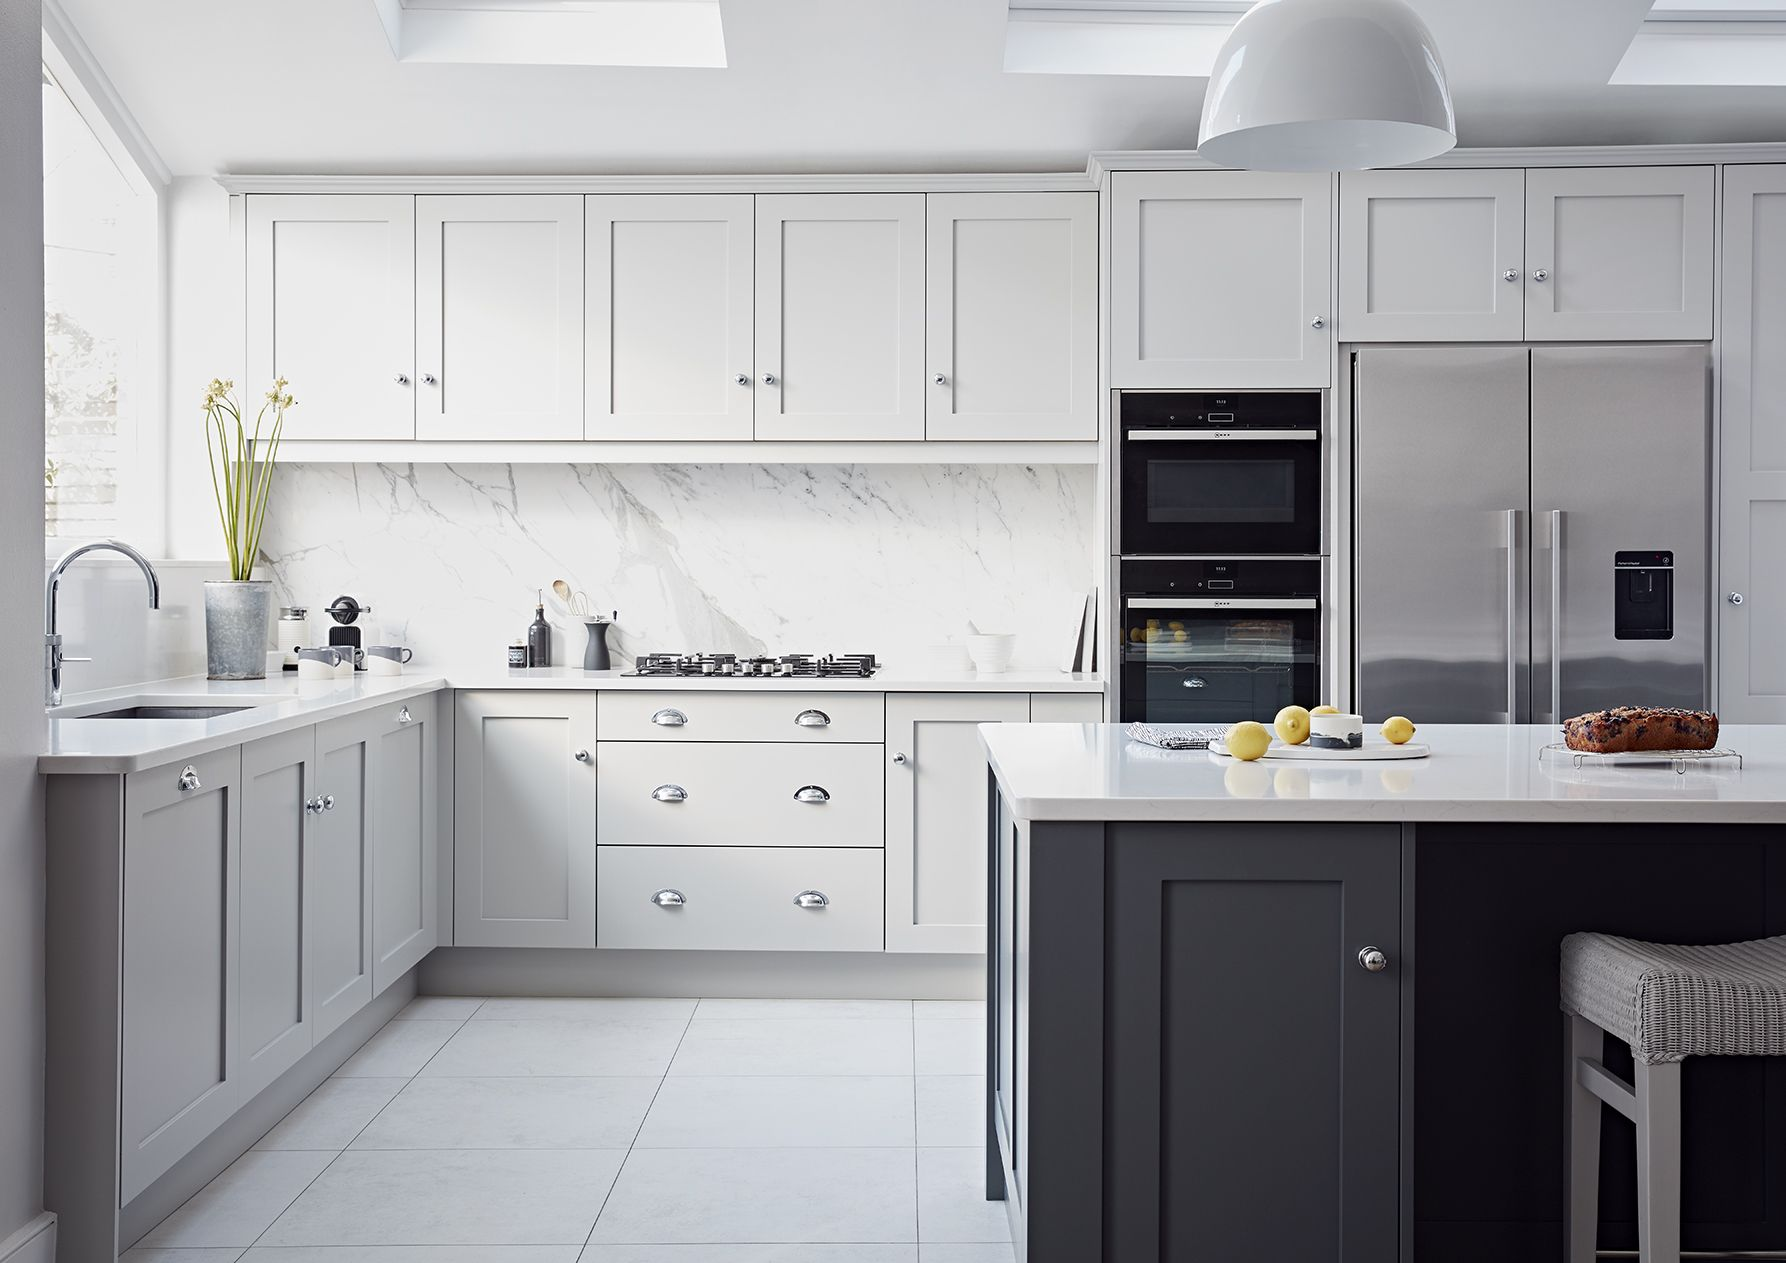 Kitchen Tiles John Lewis timeless original shaker kitchenjohn lewis of hungerford. a